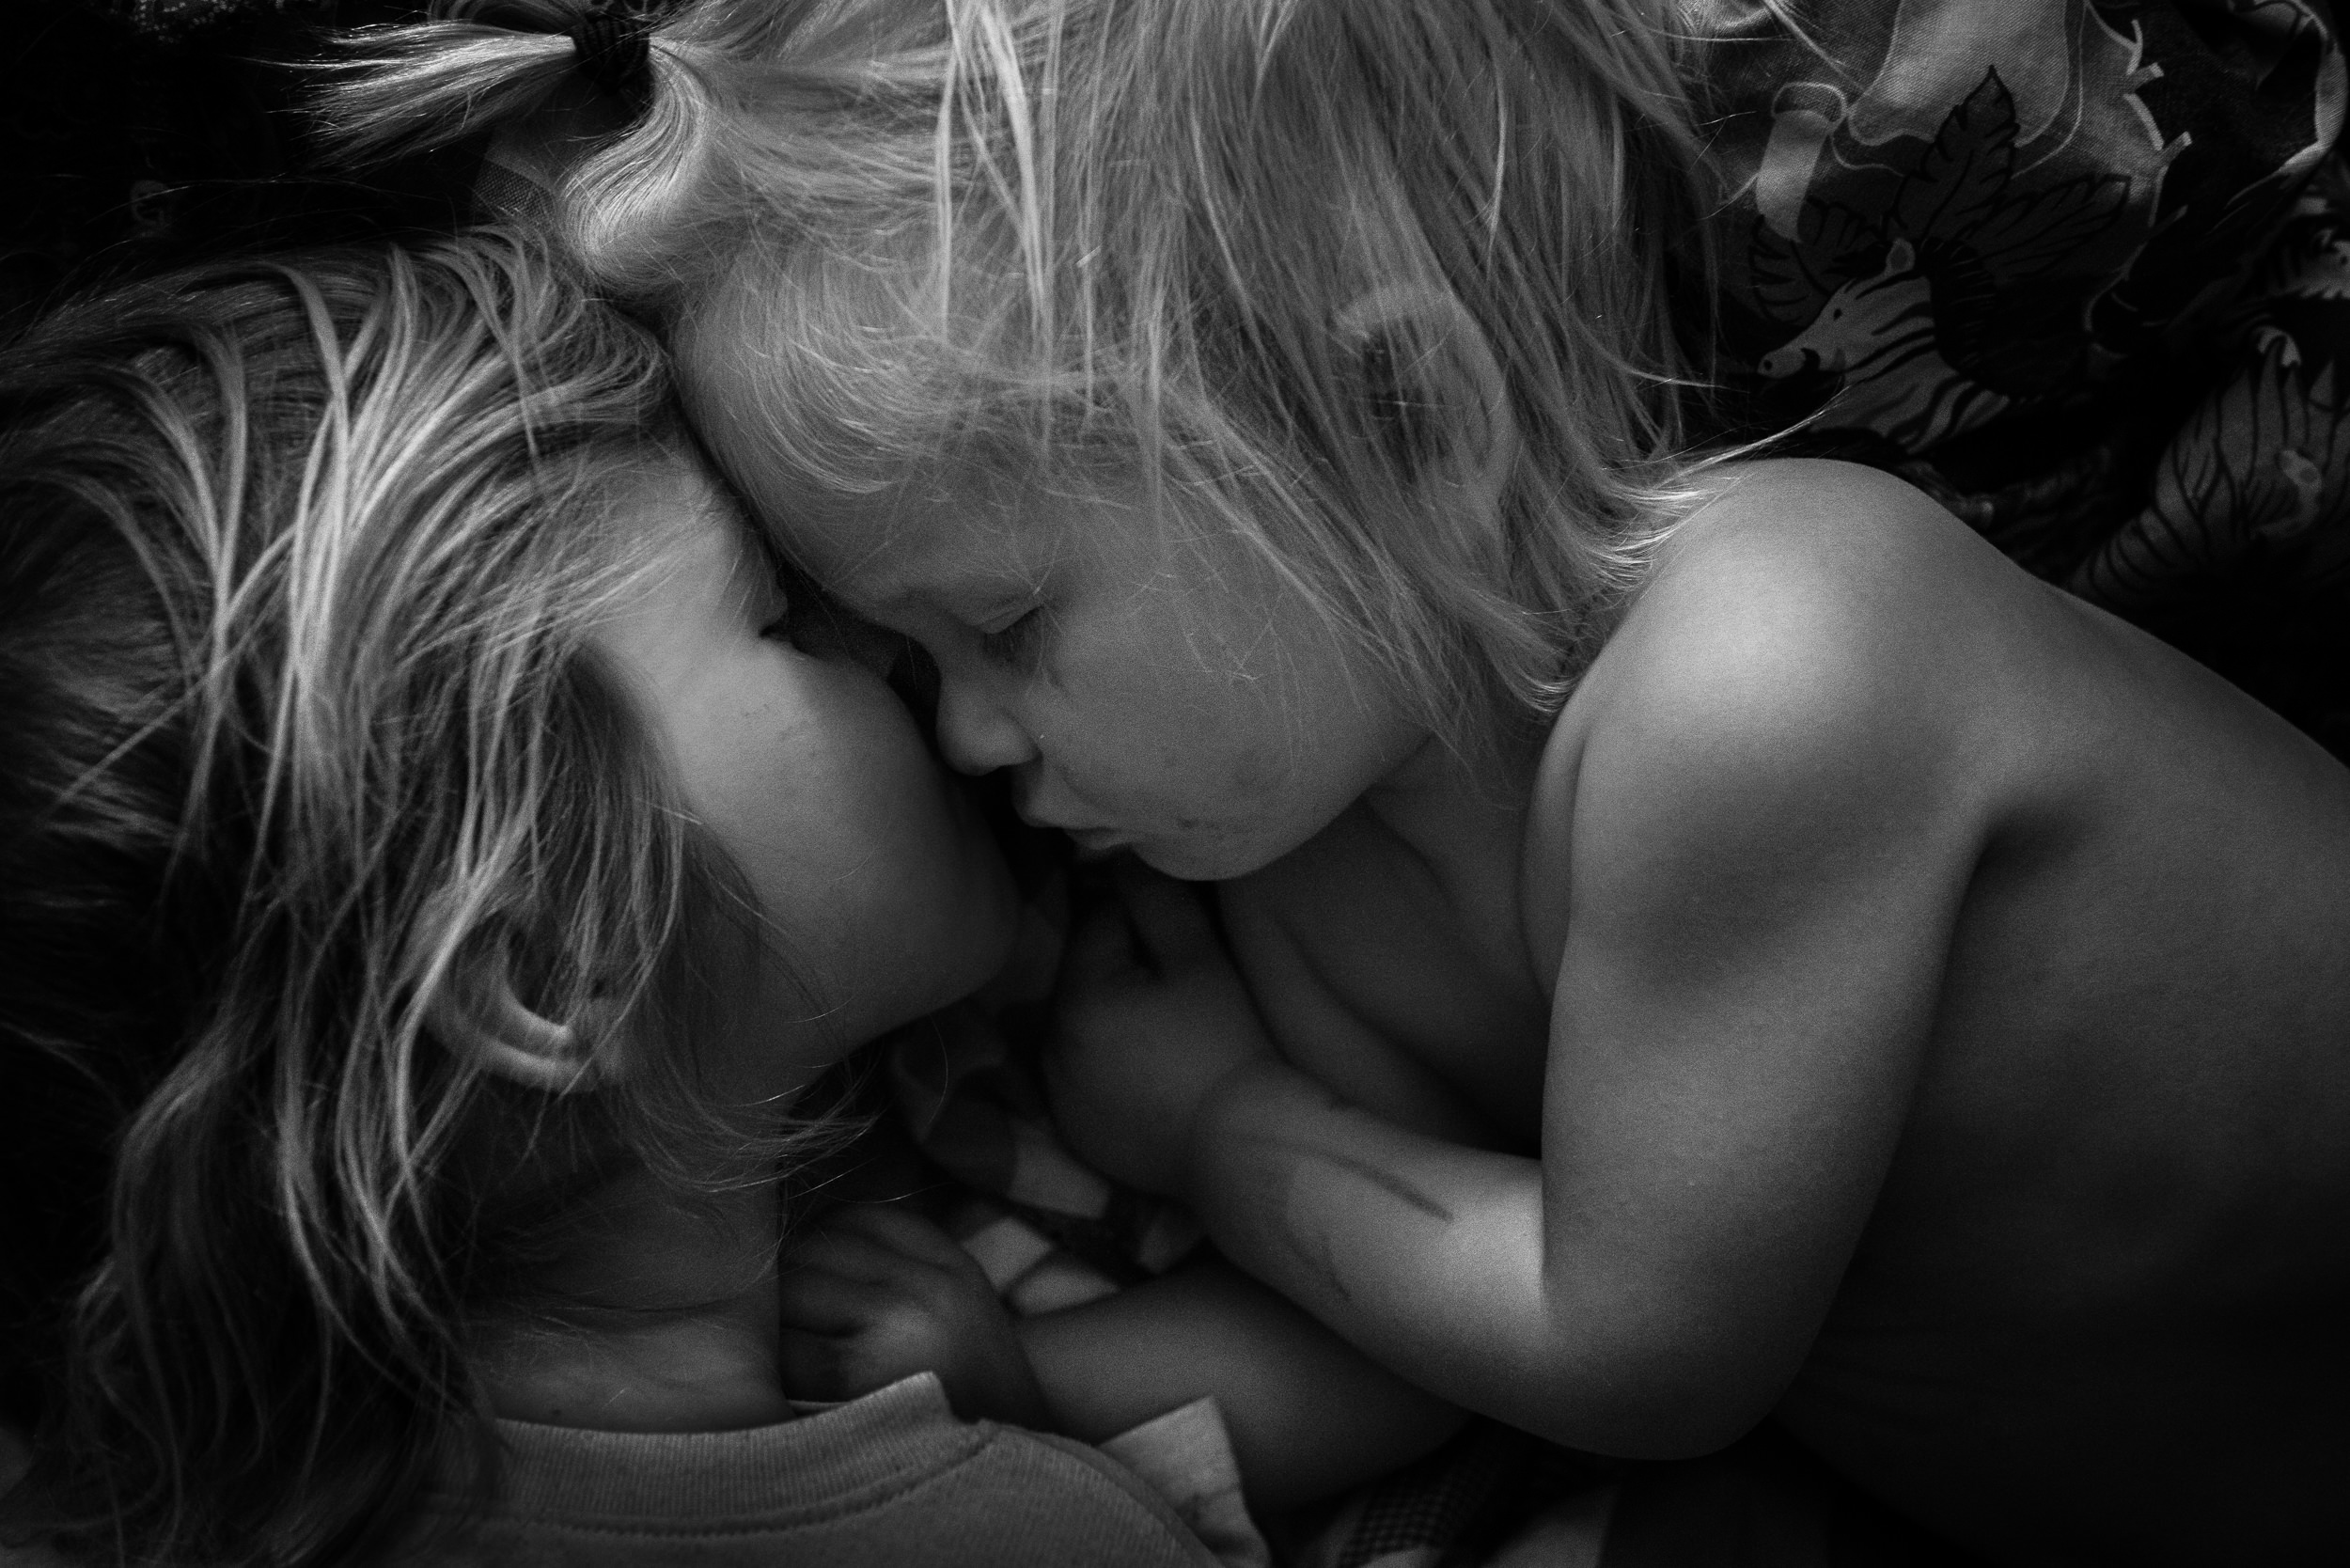 Molly Rees Photo - Black and White Documentary Childhood Photography - Sibling portrait of children sleeping by M. Menschel